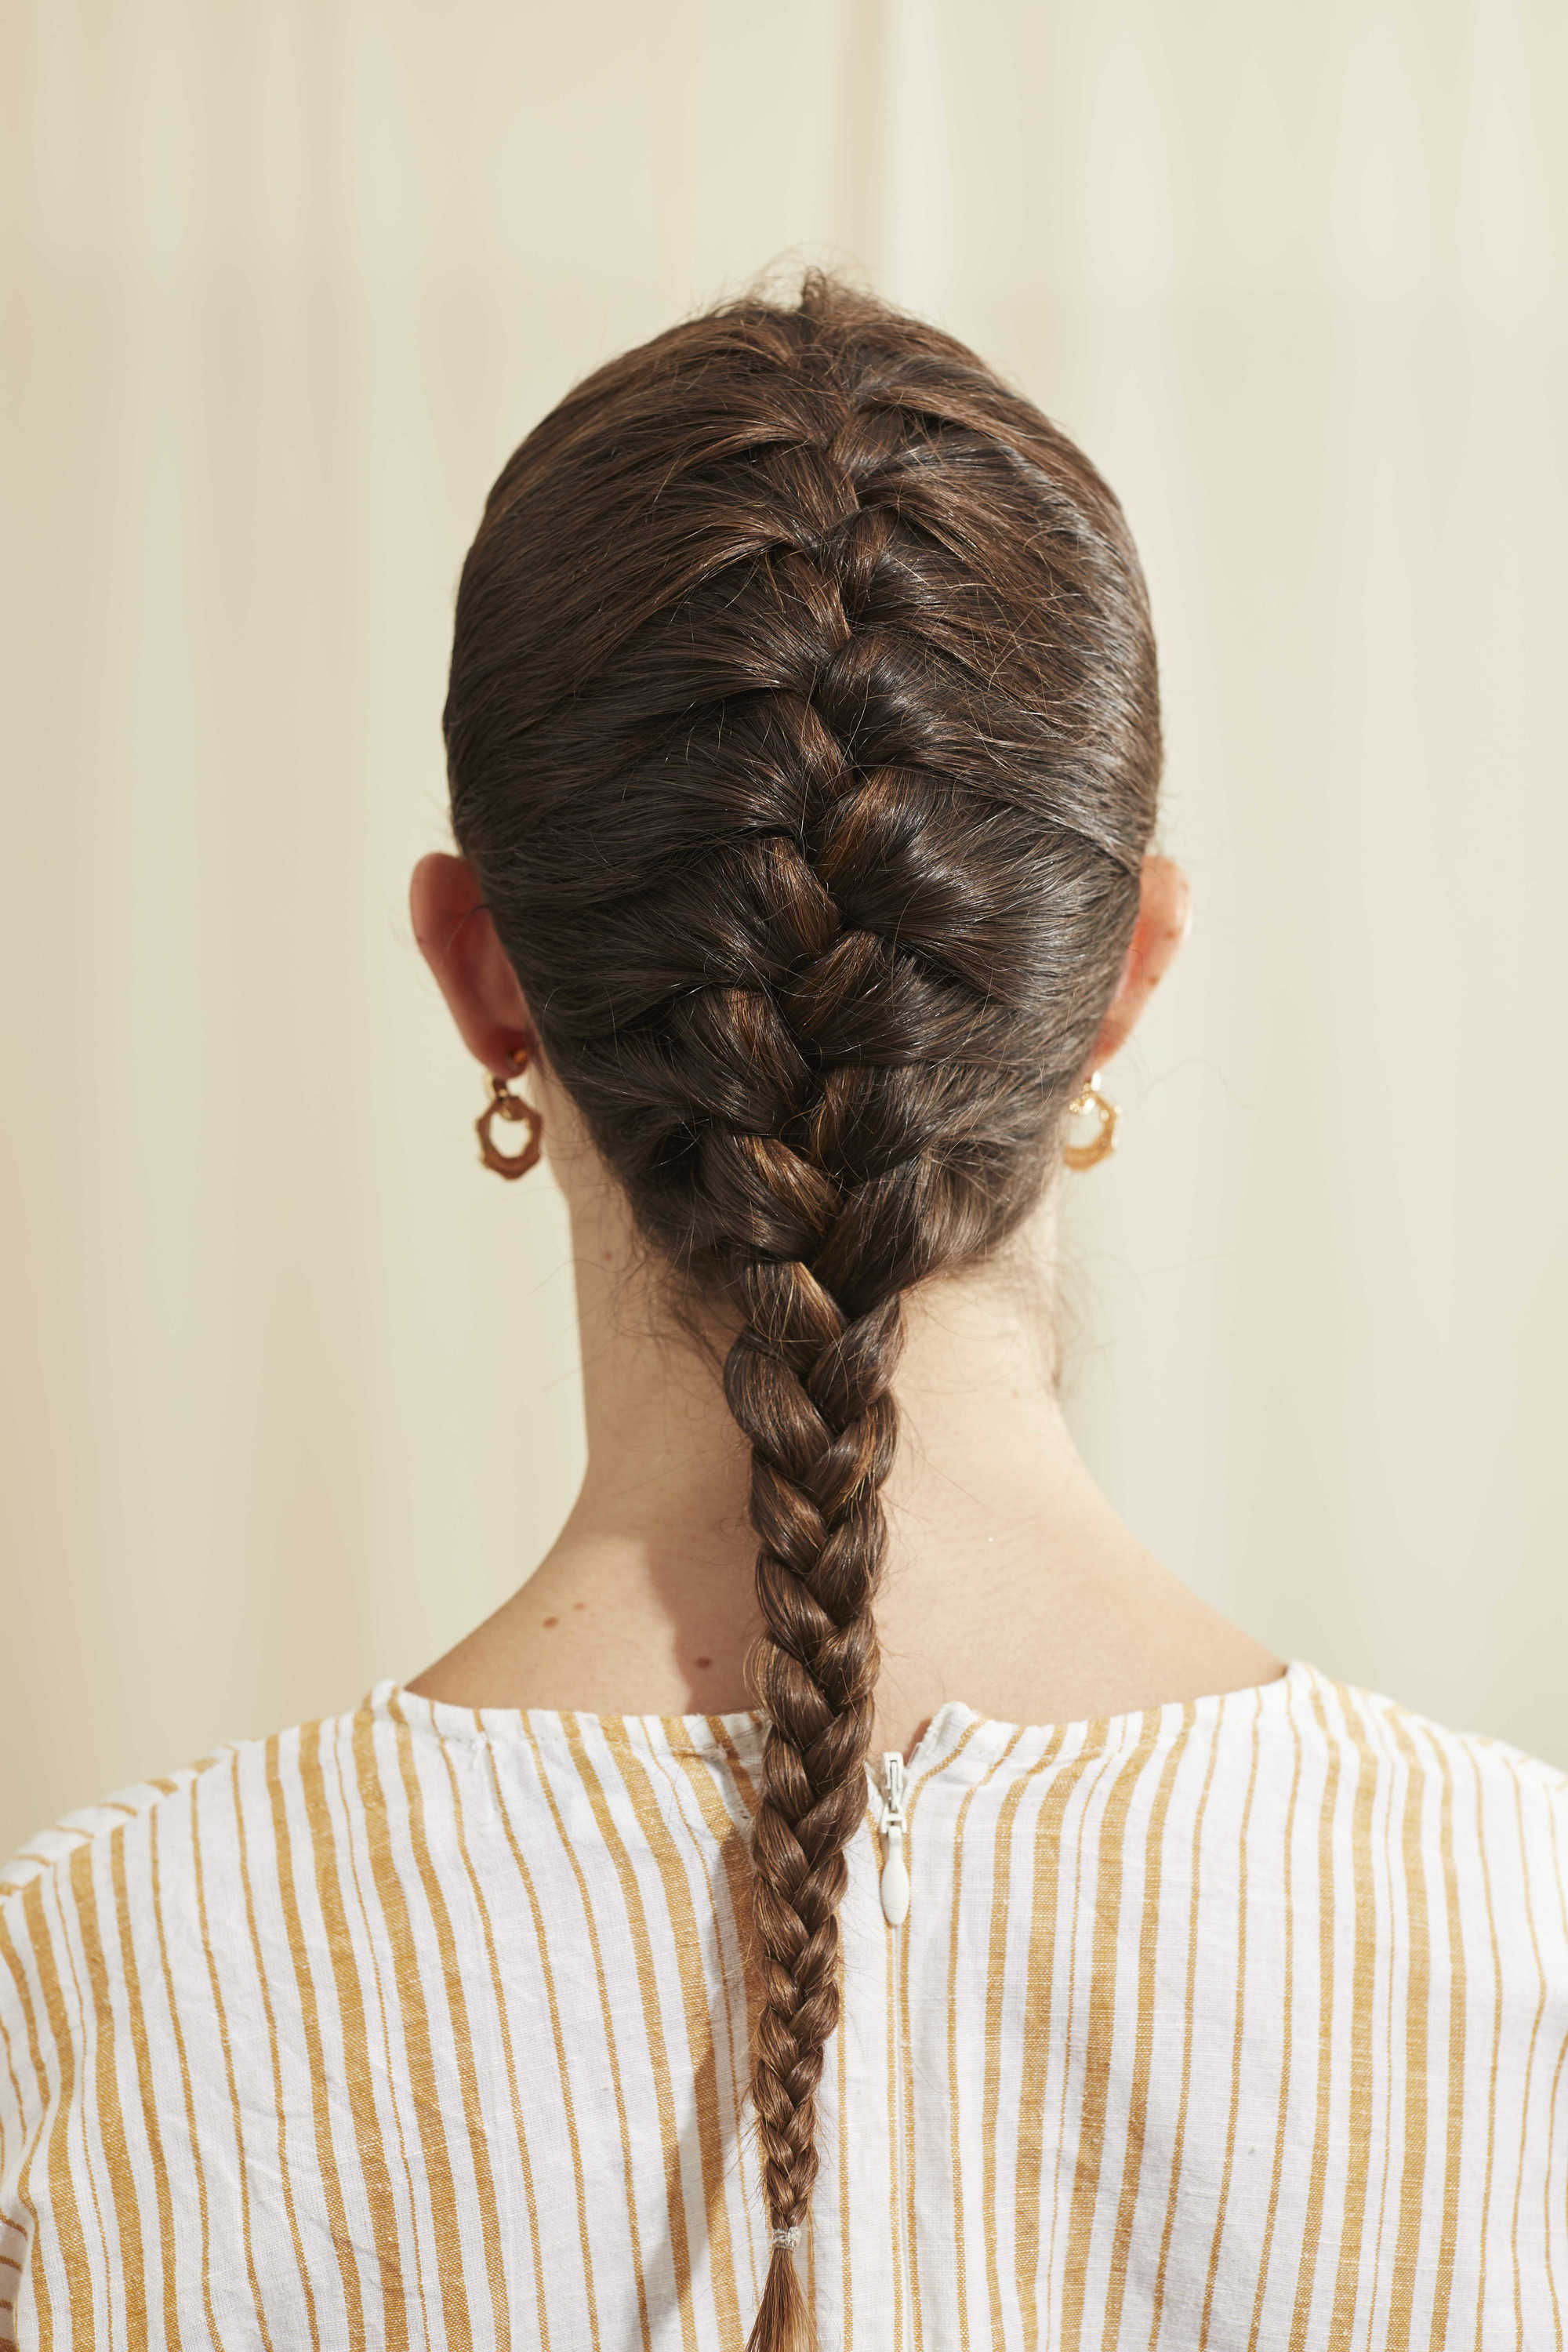 Woman with dark brown hair styled into a French braid